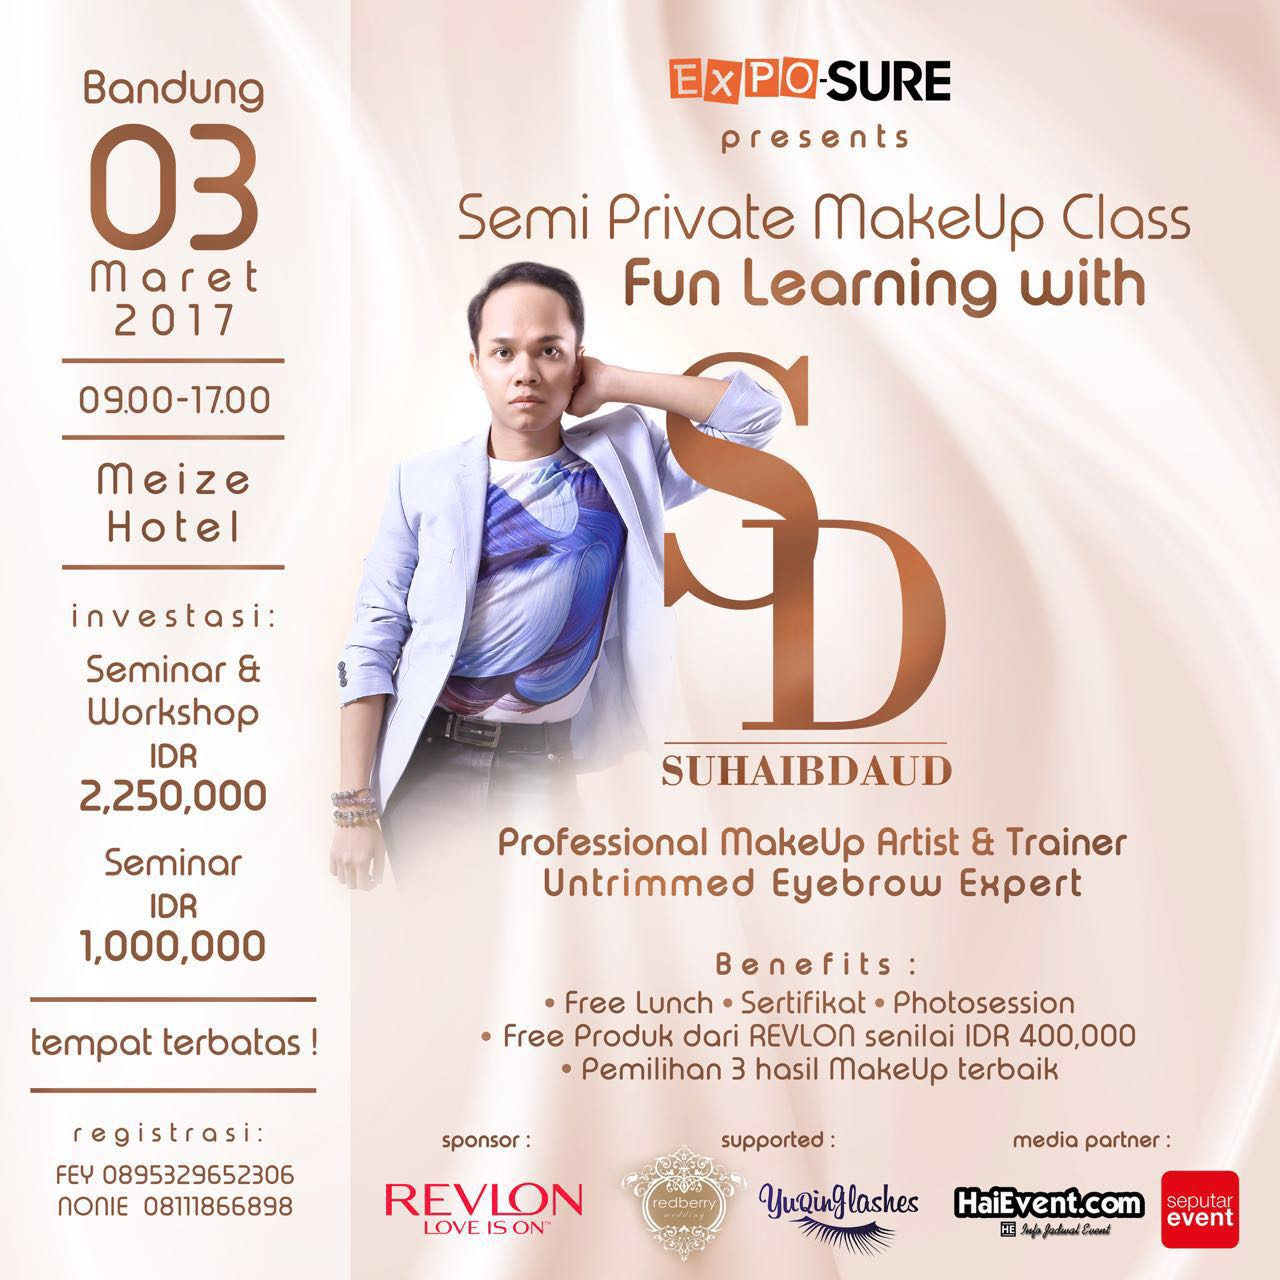 Semi Private Makeup Class with Suhaib Daud - Meize Hotel Bandung, 03 Maret 2017